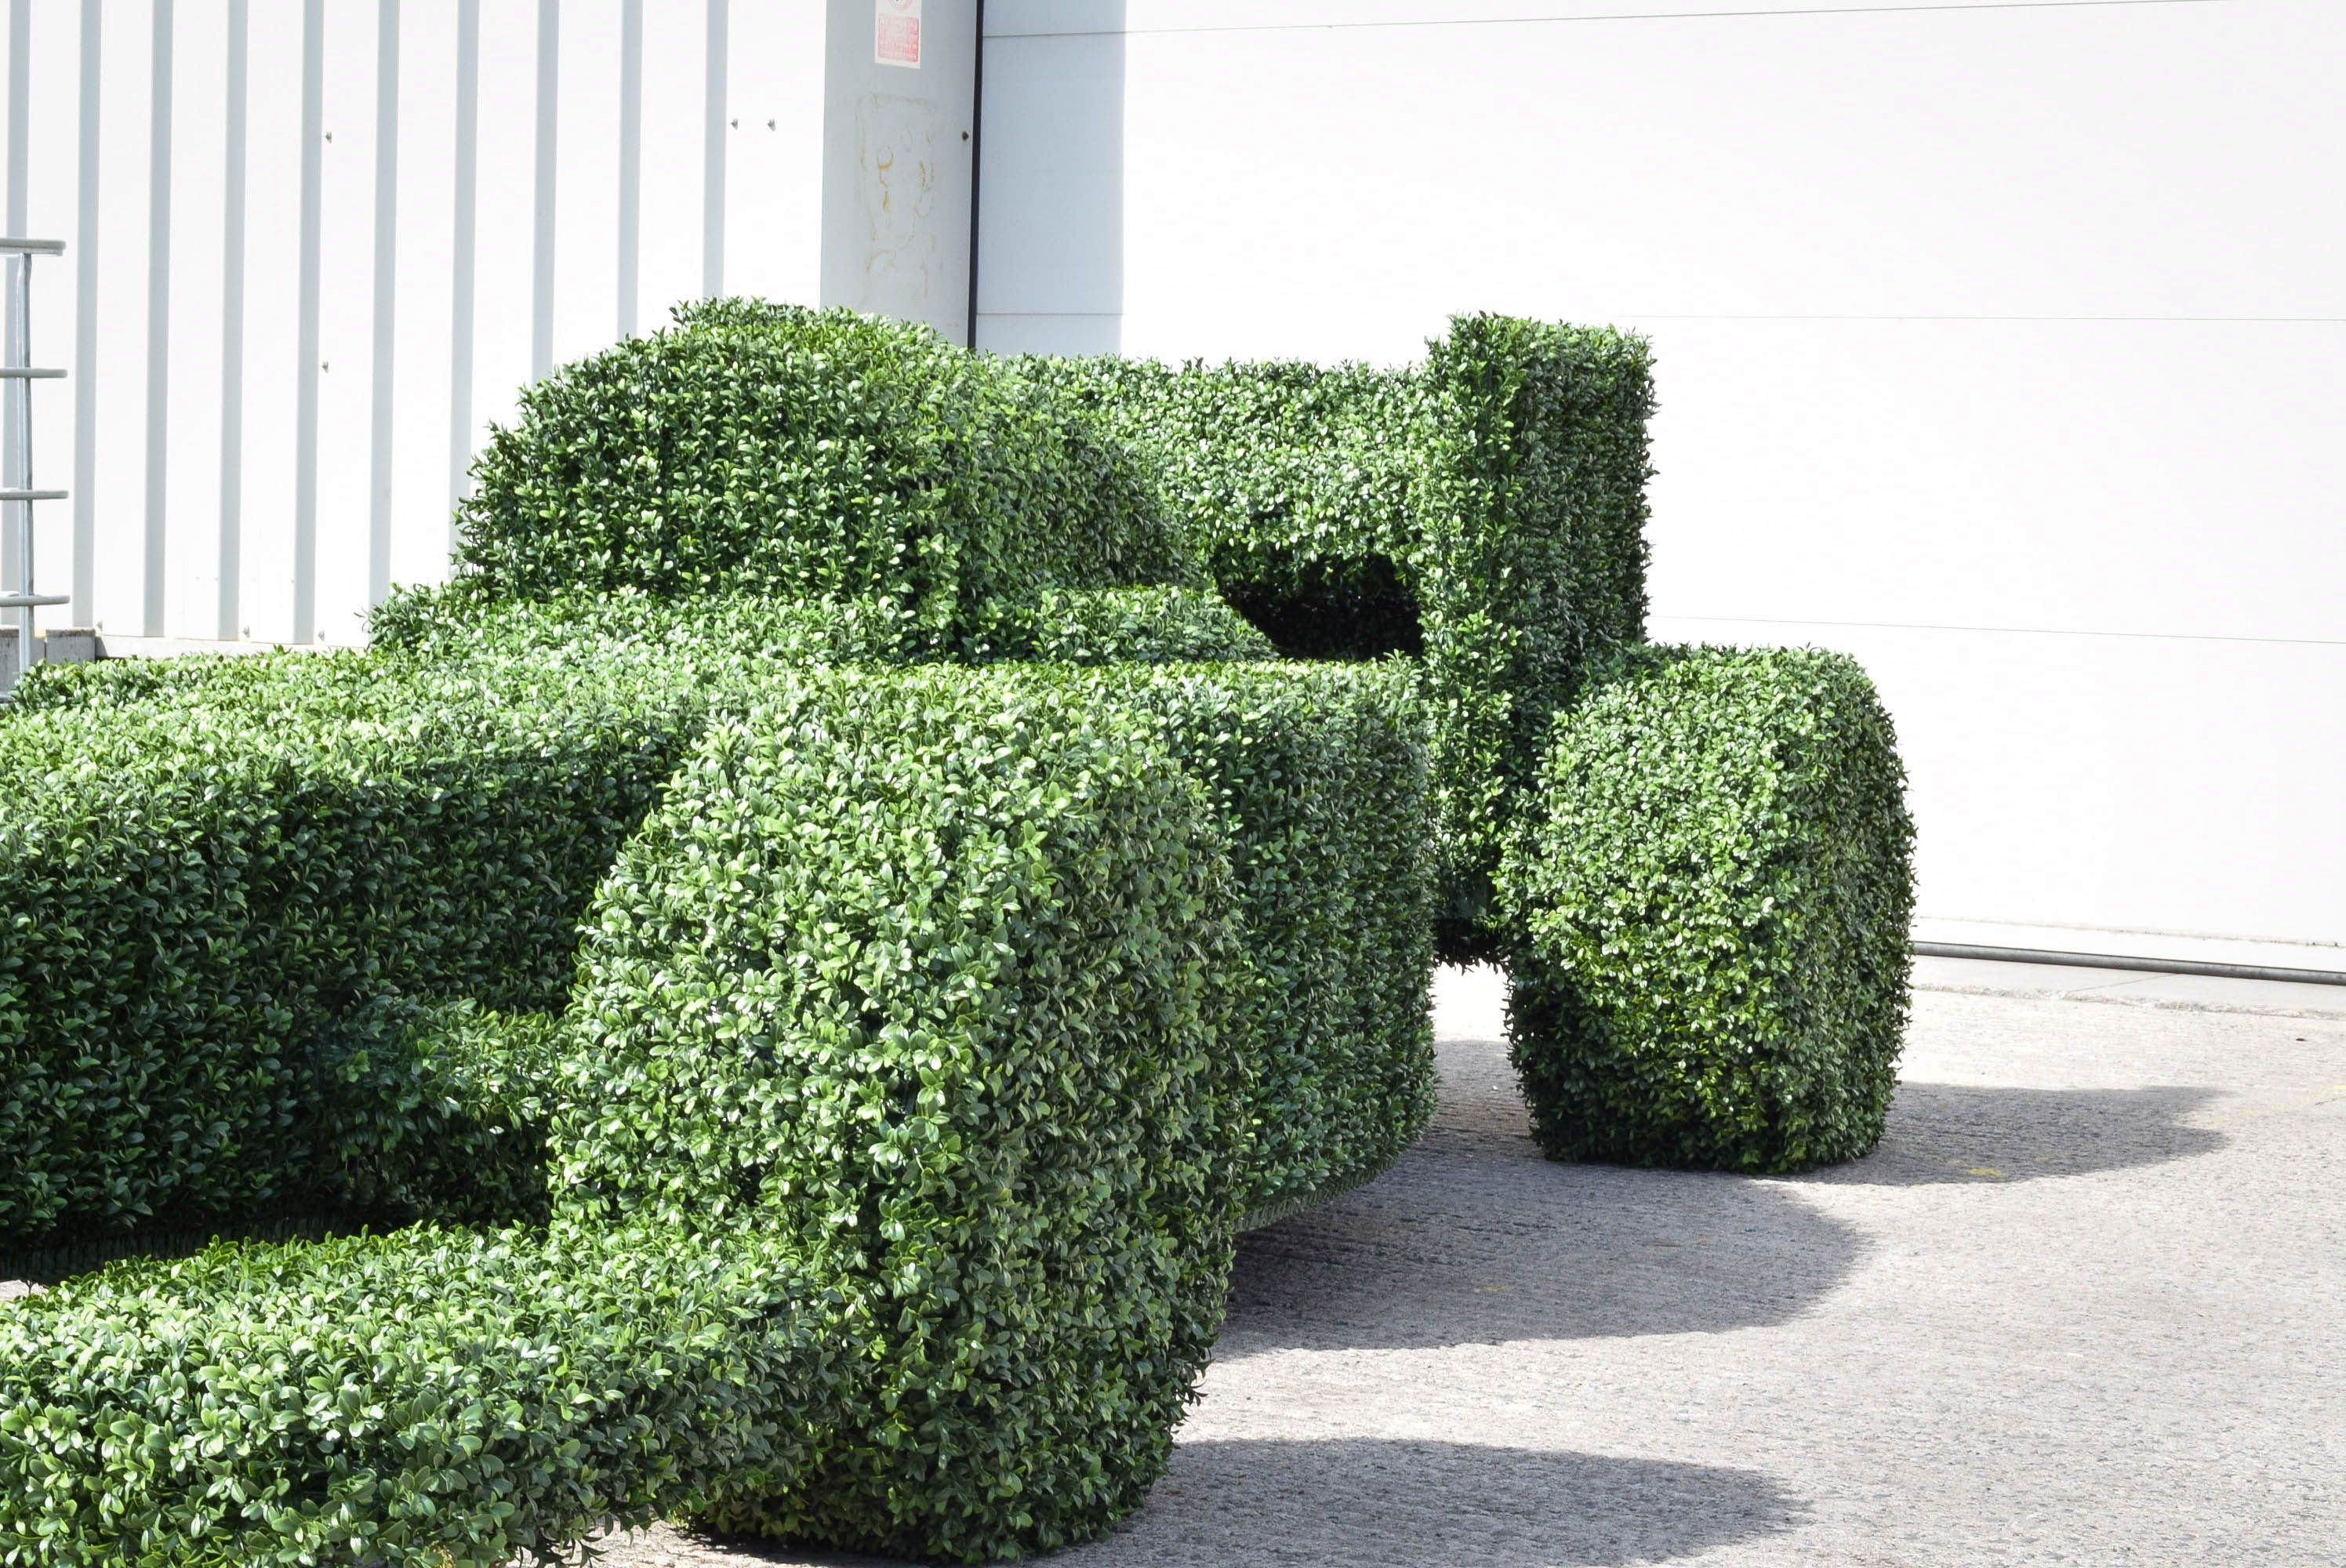 Perfect Formula 1 Car, Artificial Buxus Topiary Car, Designed And Made For The Abu  Dhabi